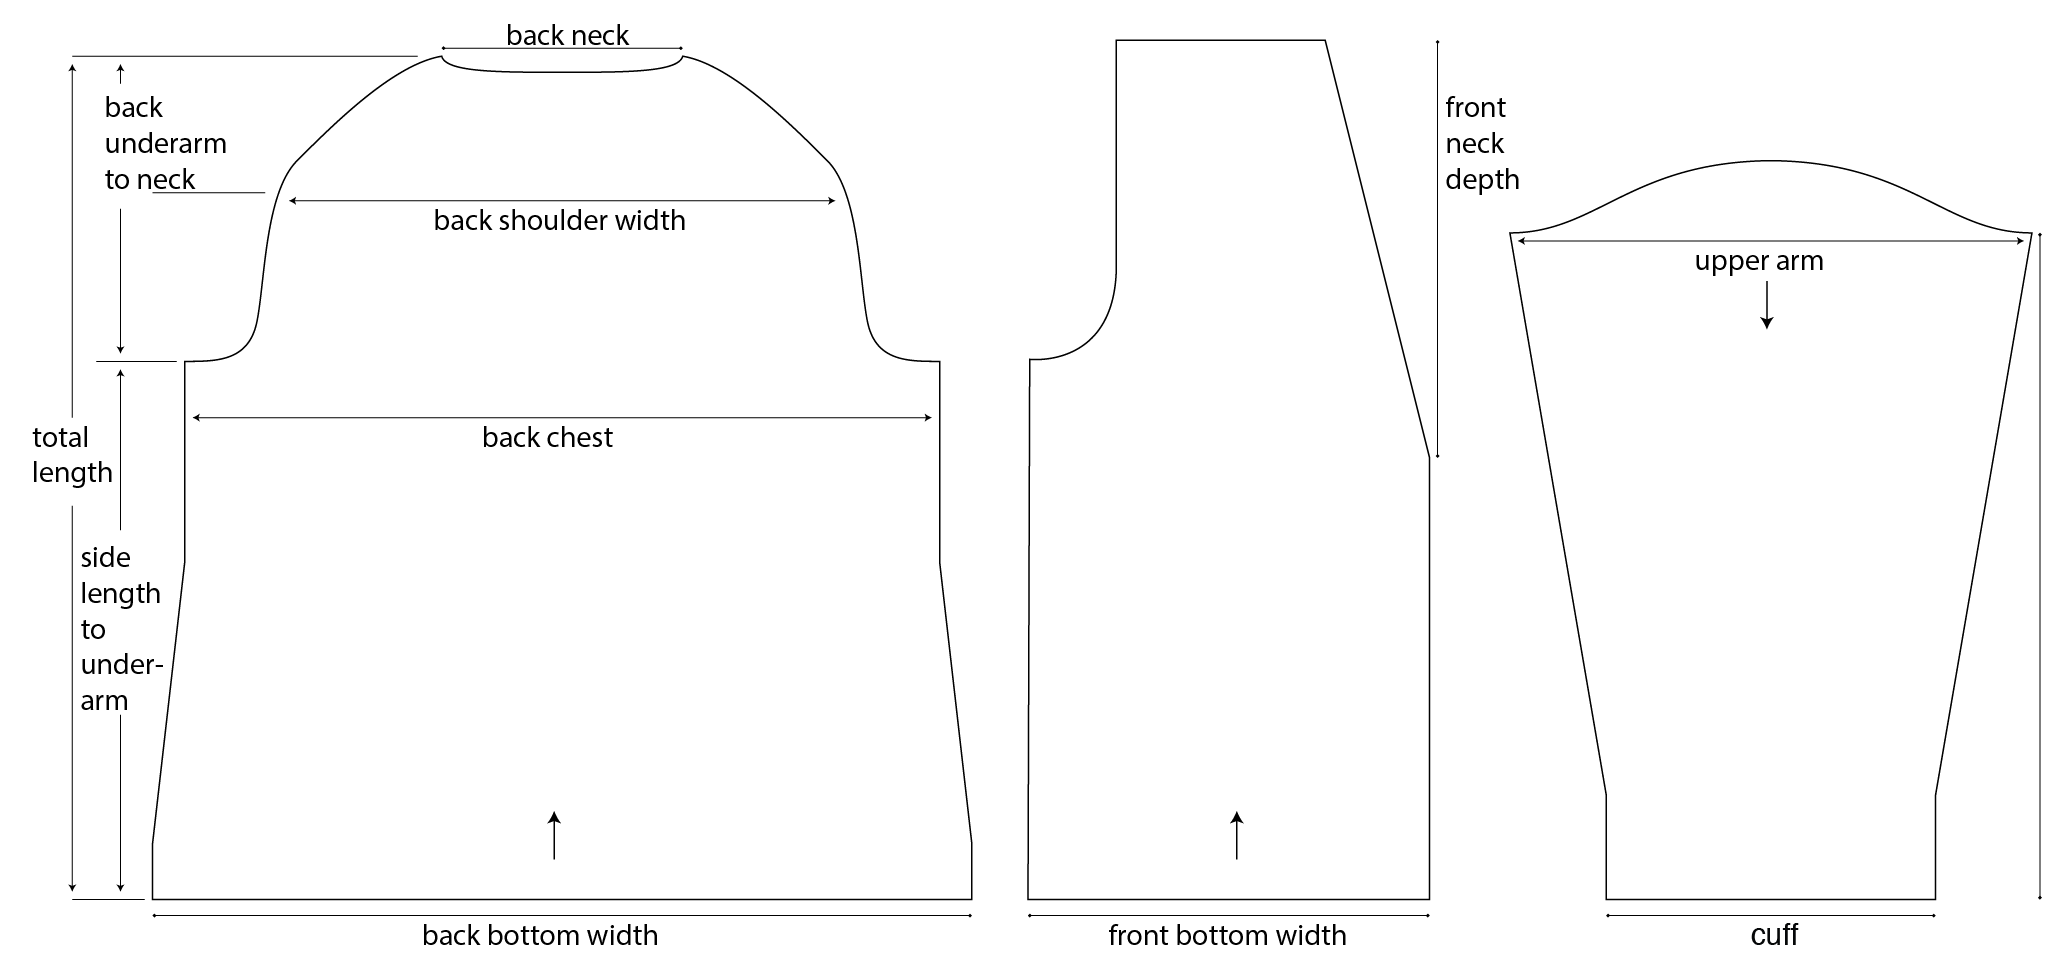 Schematic illustration showing the back, front and sleeve of the granton cardigan